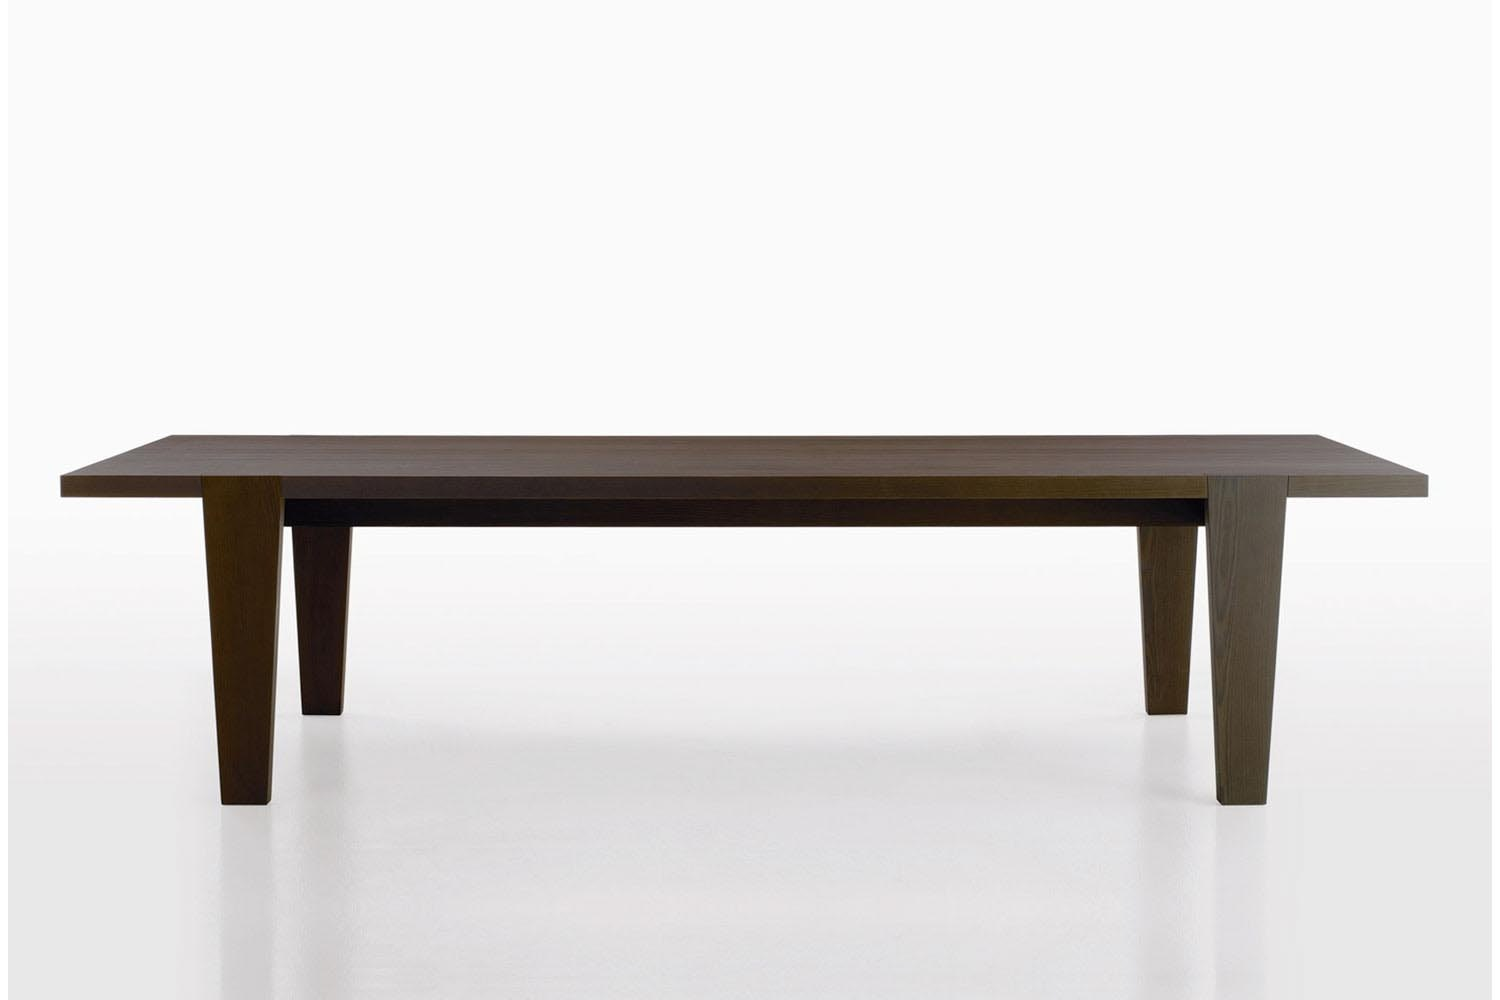 Omero Table by Antonio Citterio for Maxalto